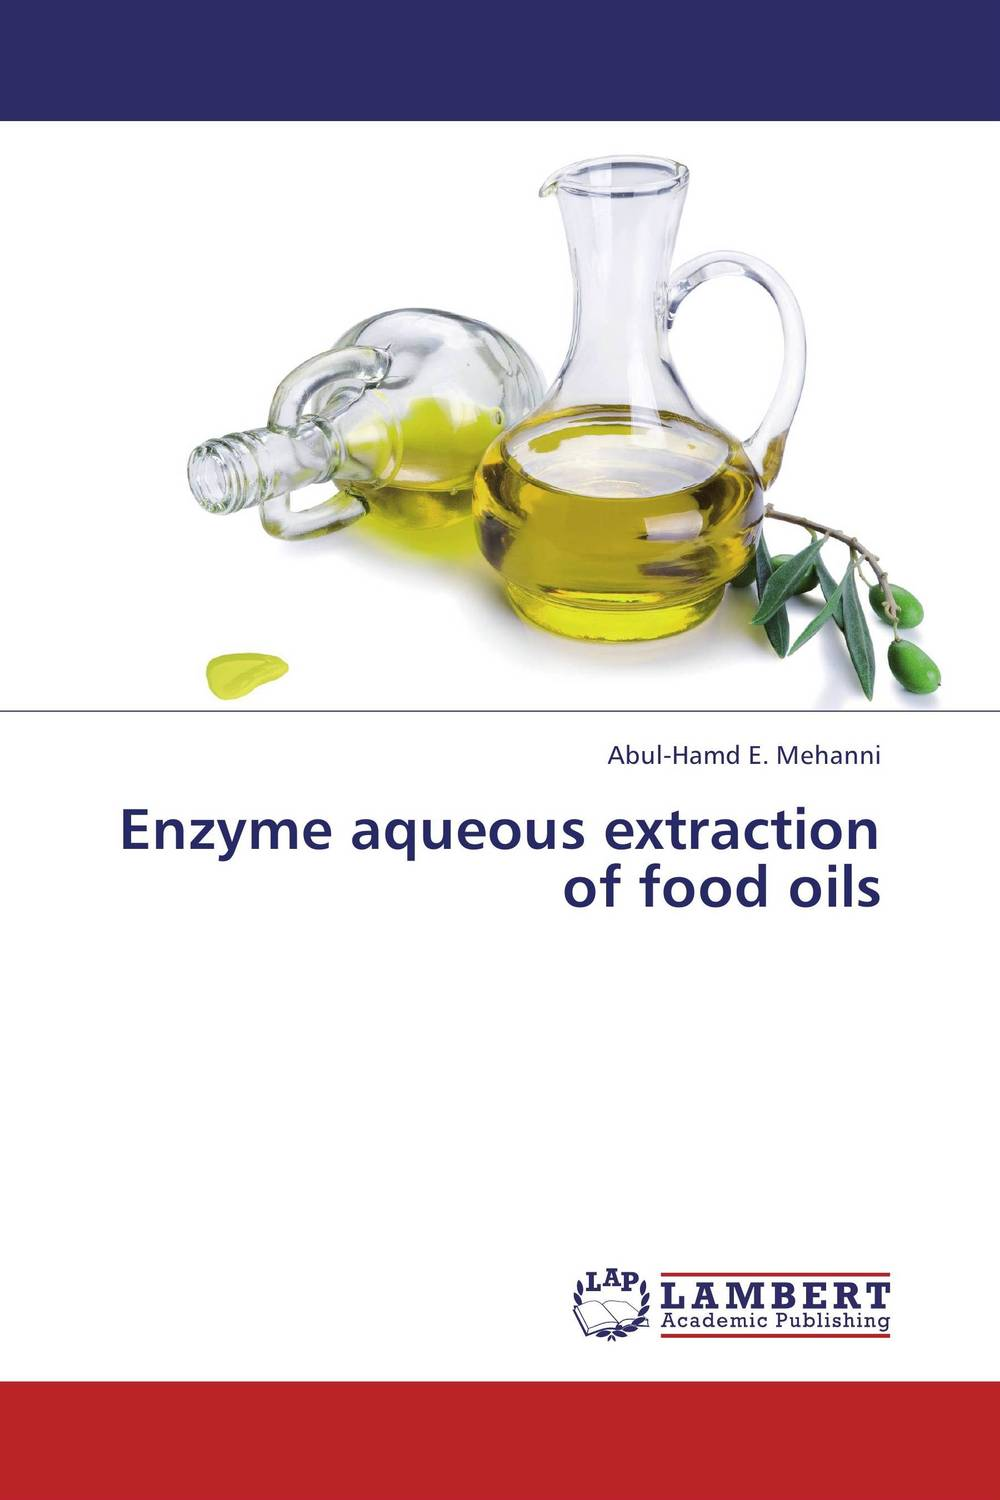 Enzyme aqueous extraction of food oils using enzyme from novozyme